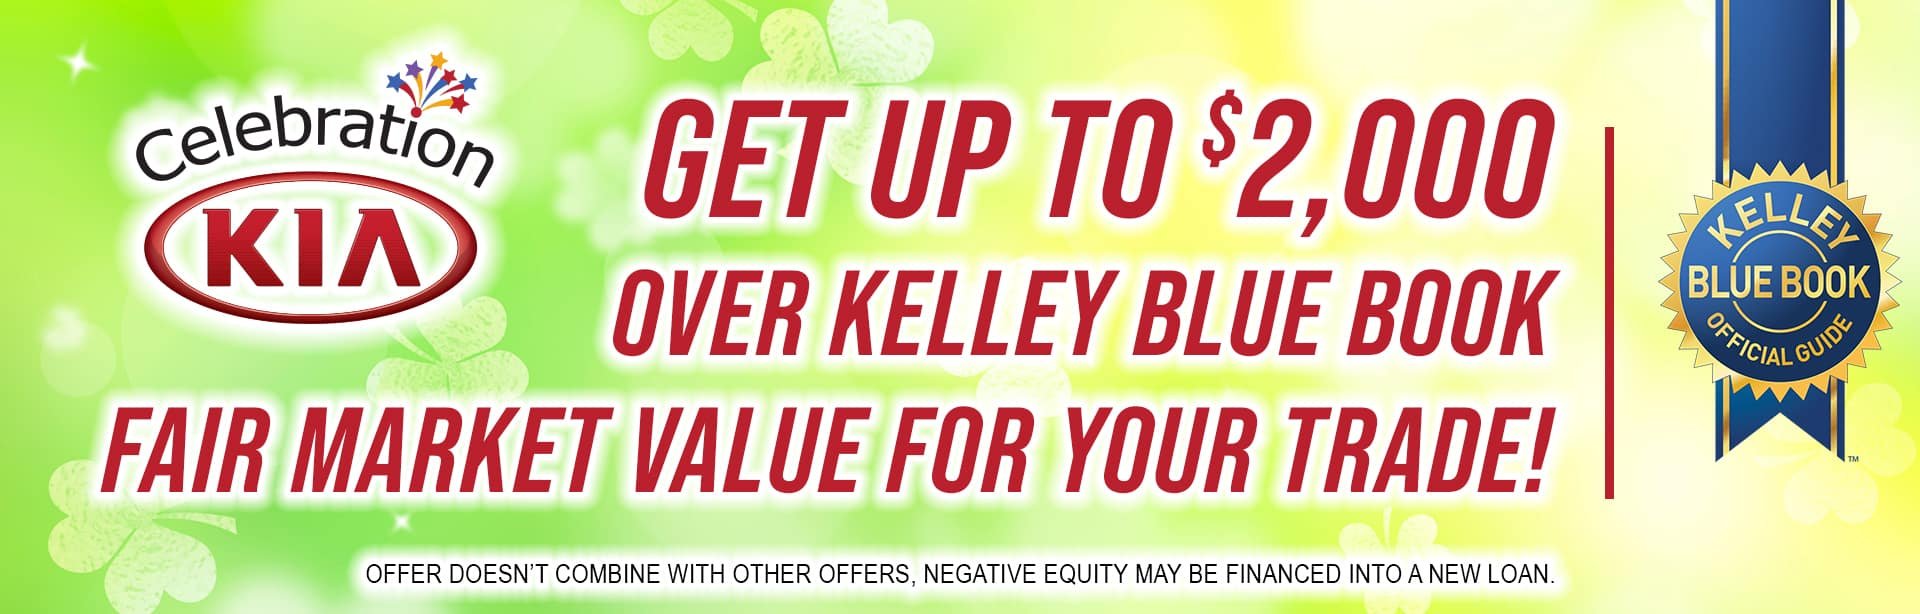 Get up to $2,000 over Kelley Blue Book Fair Market Value